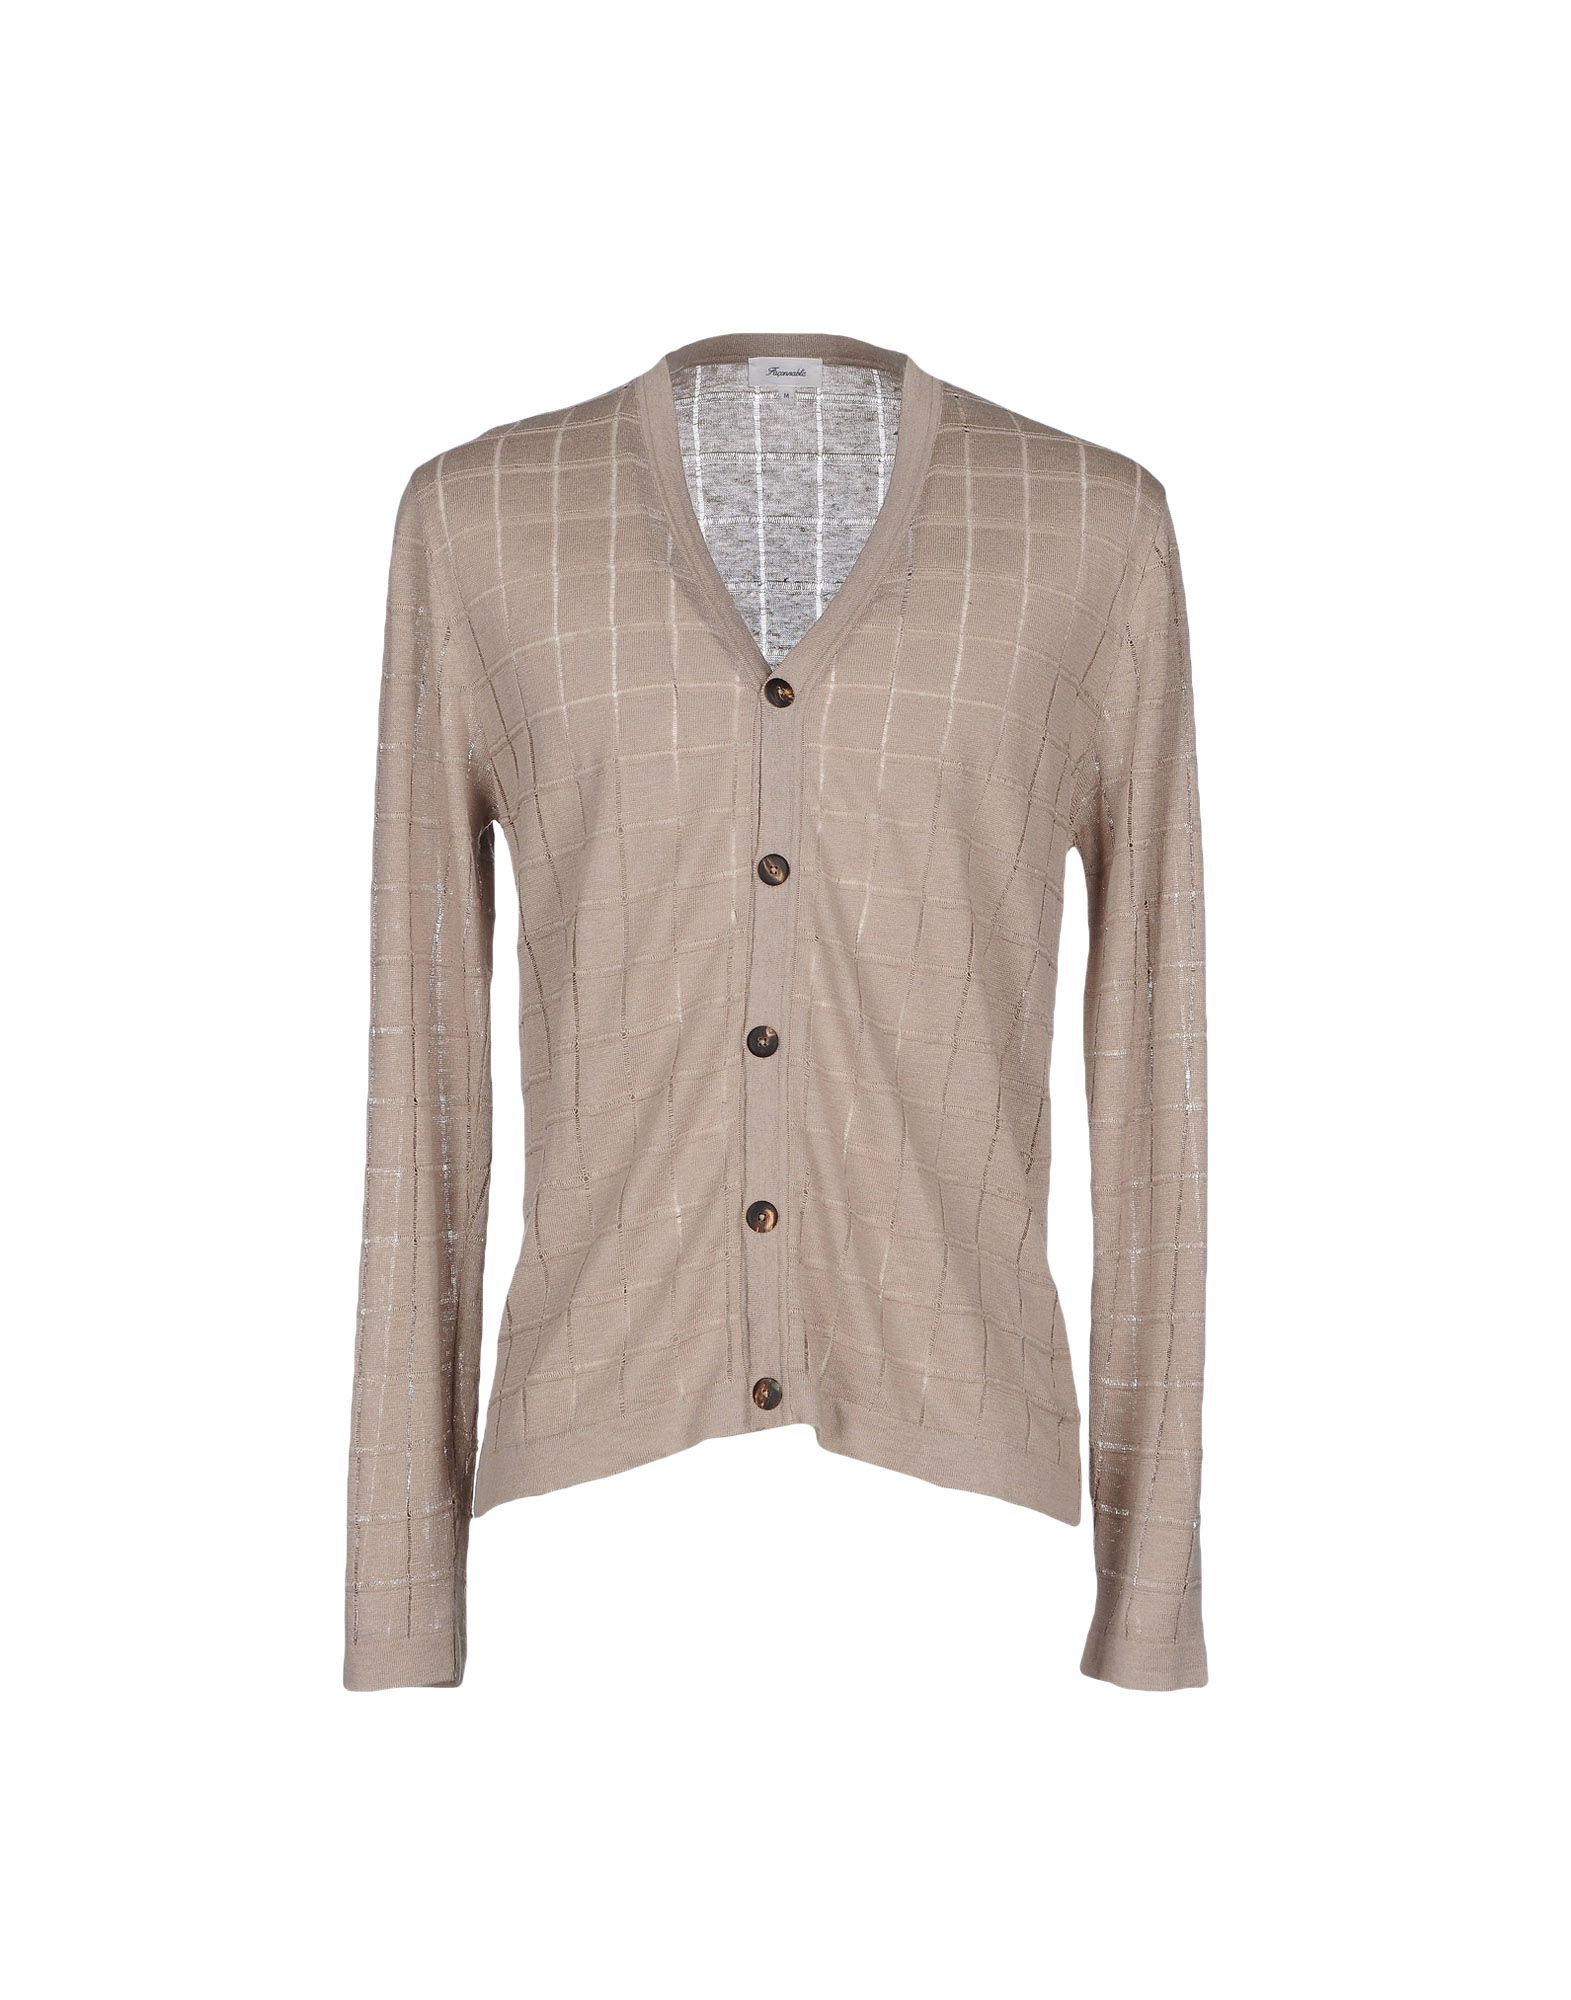 FAÇONNABLE Cardigan in Sand